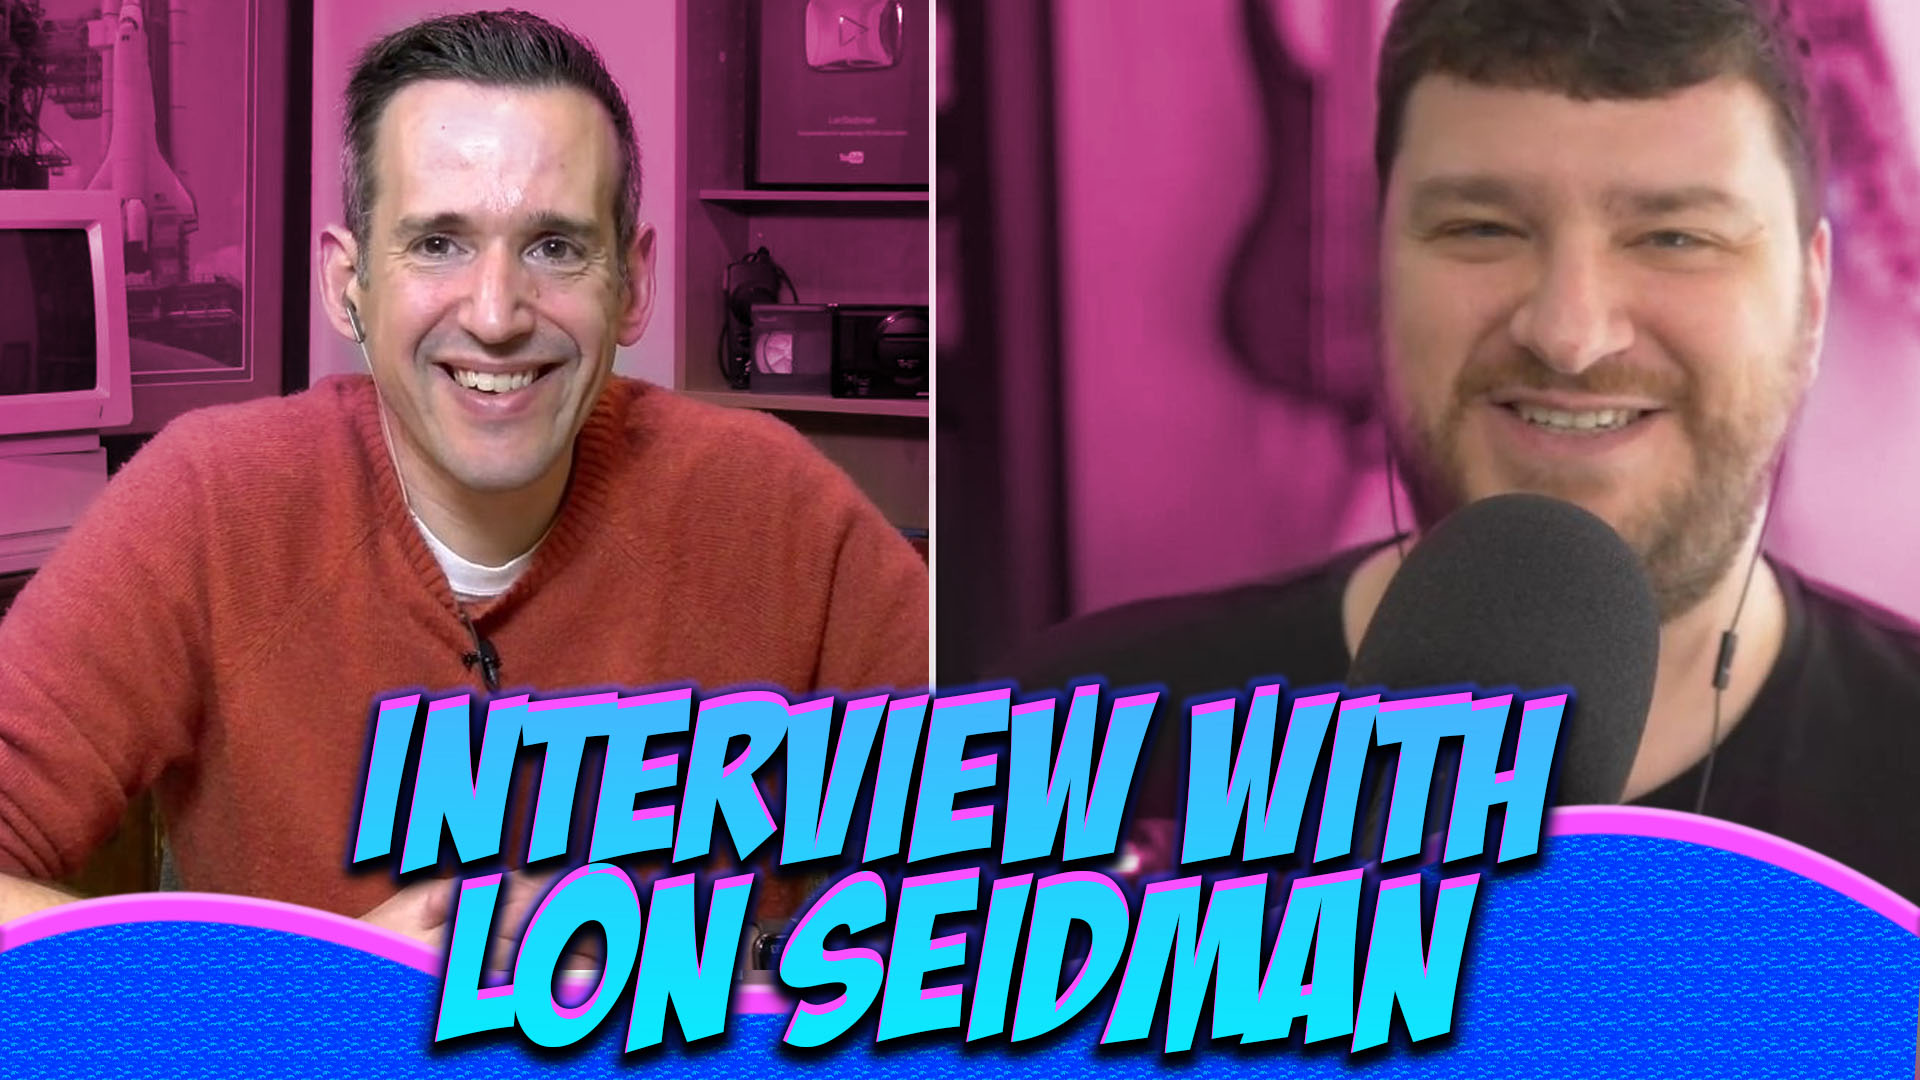 Interview with Lon Seidman